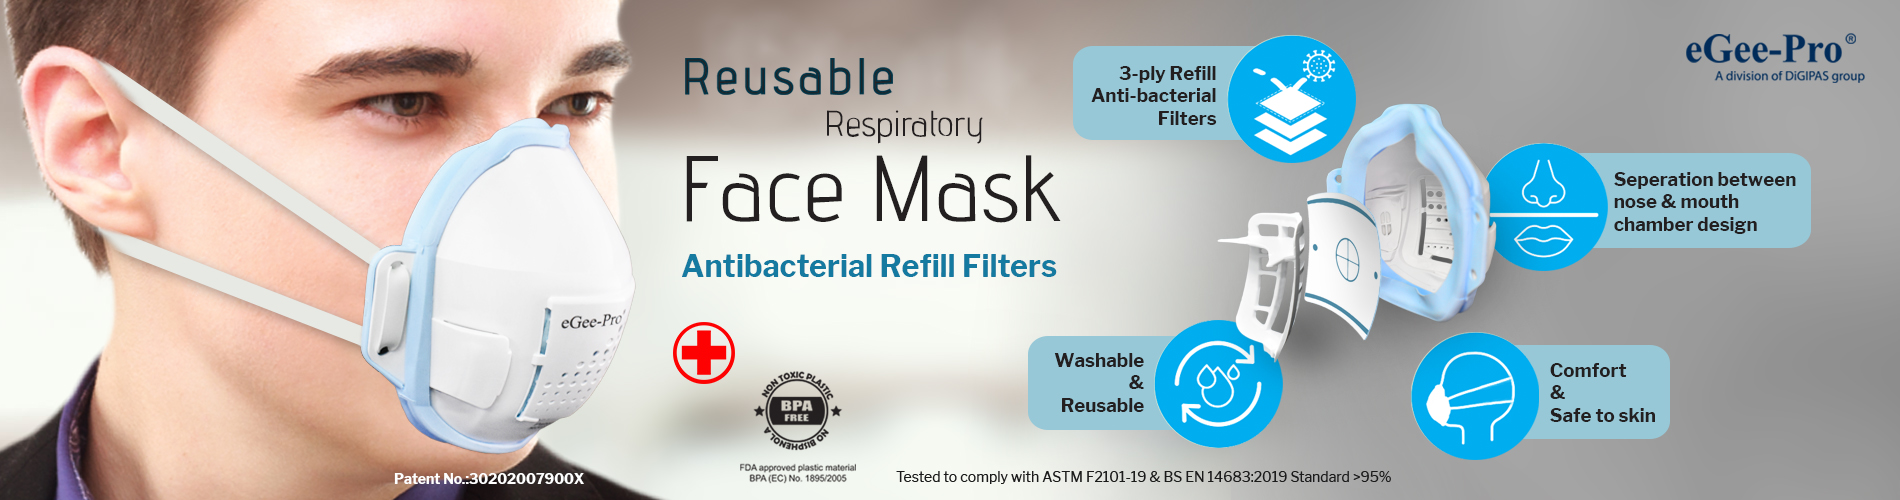 Reuseable Face Mask